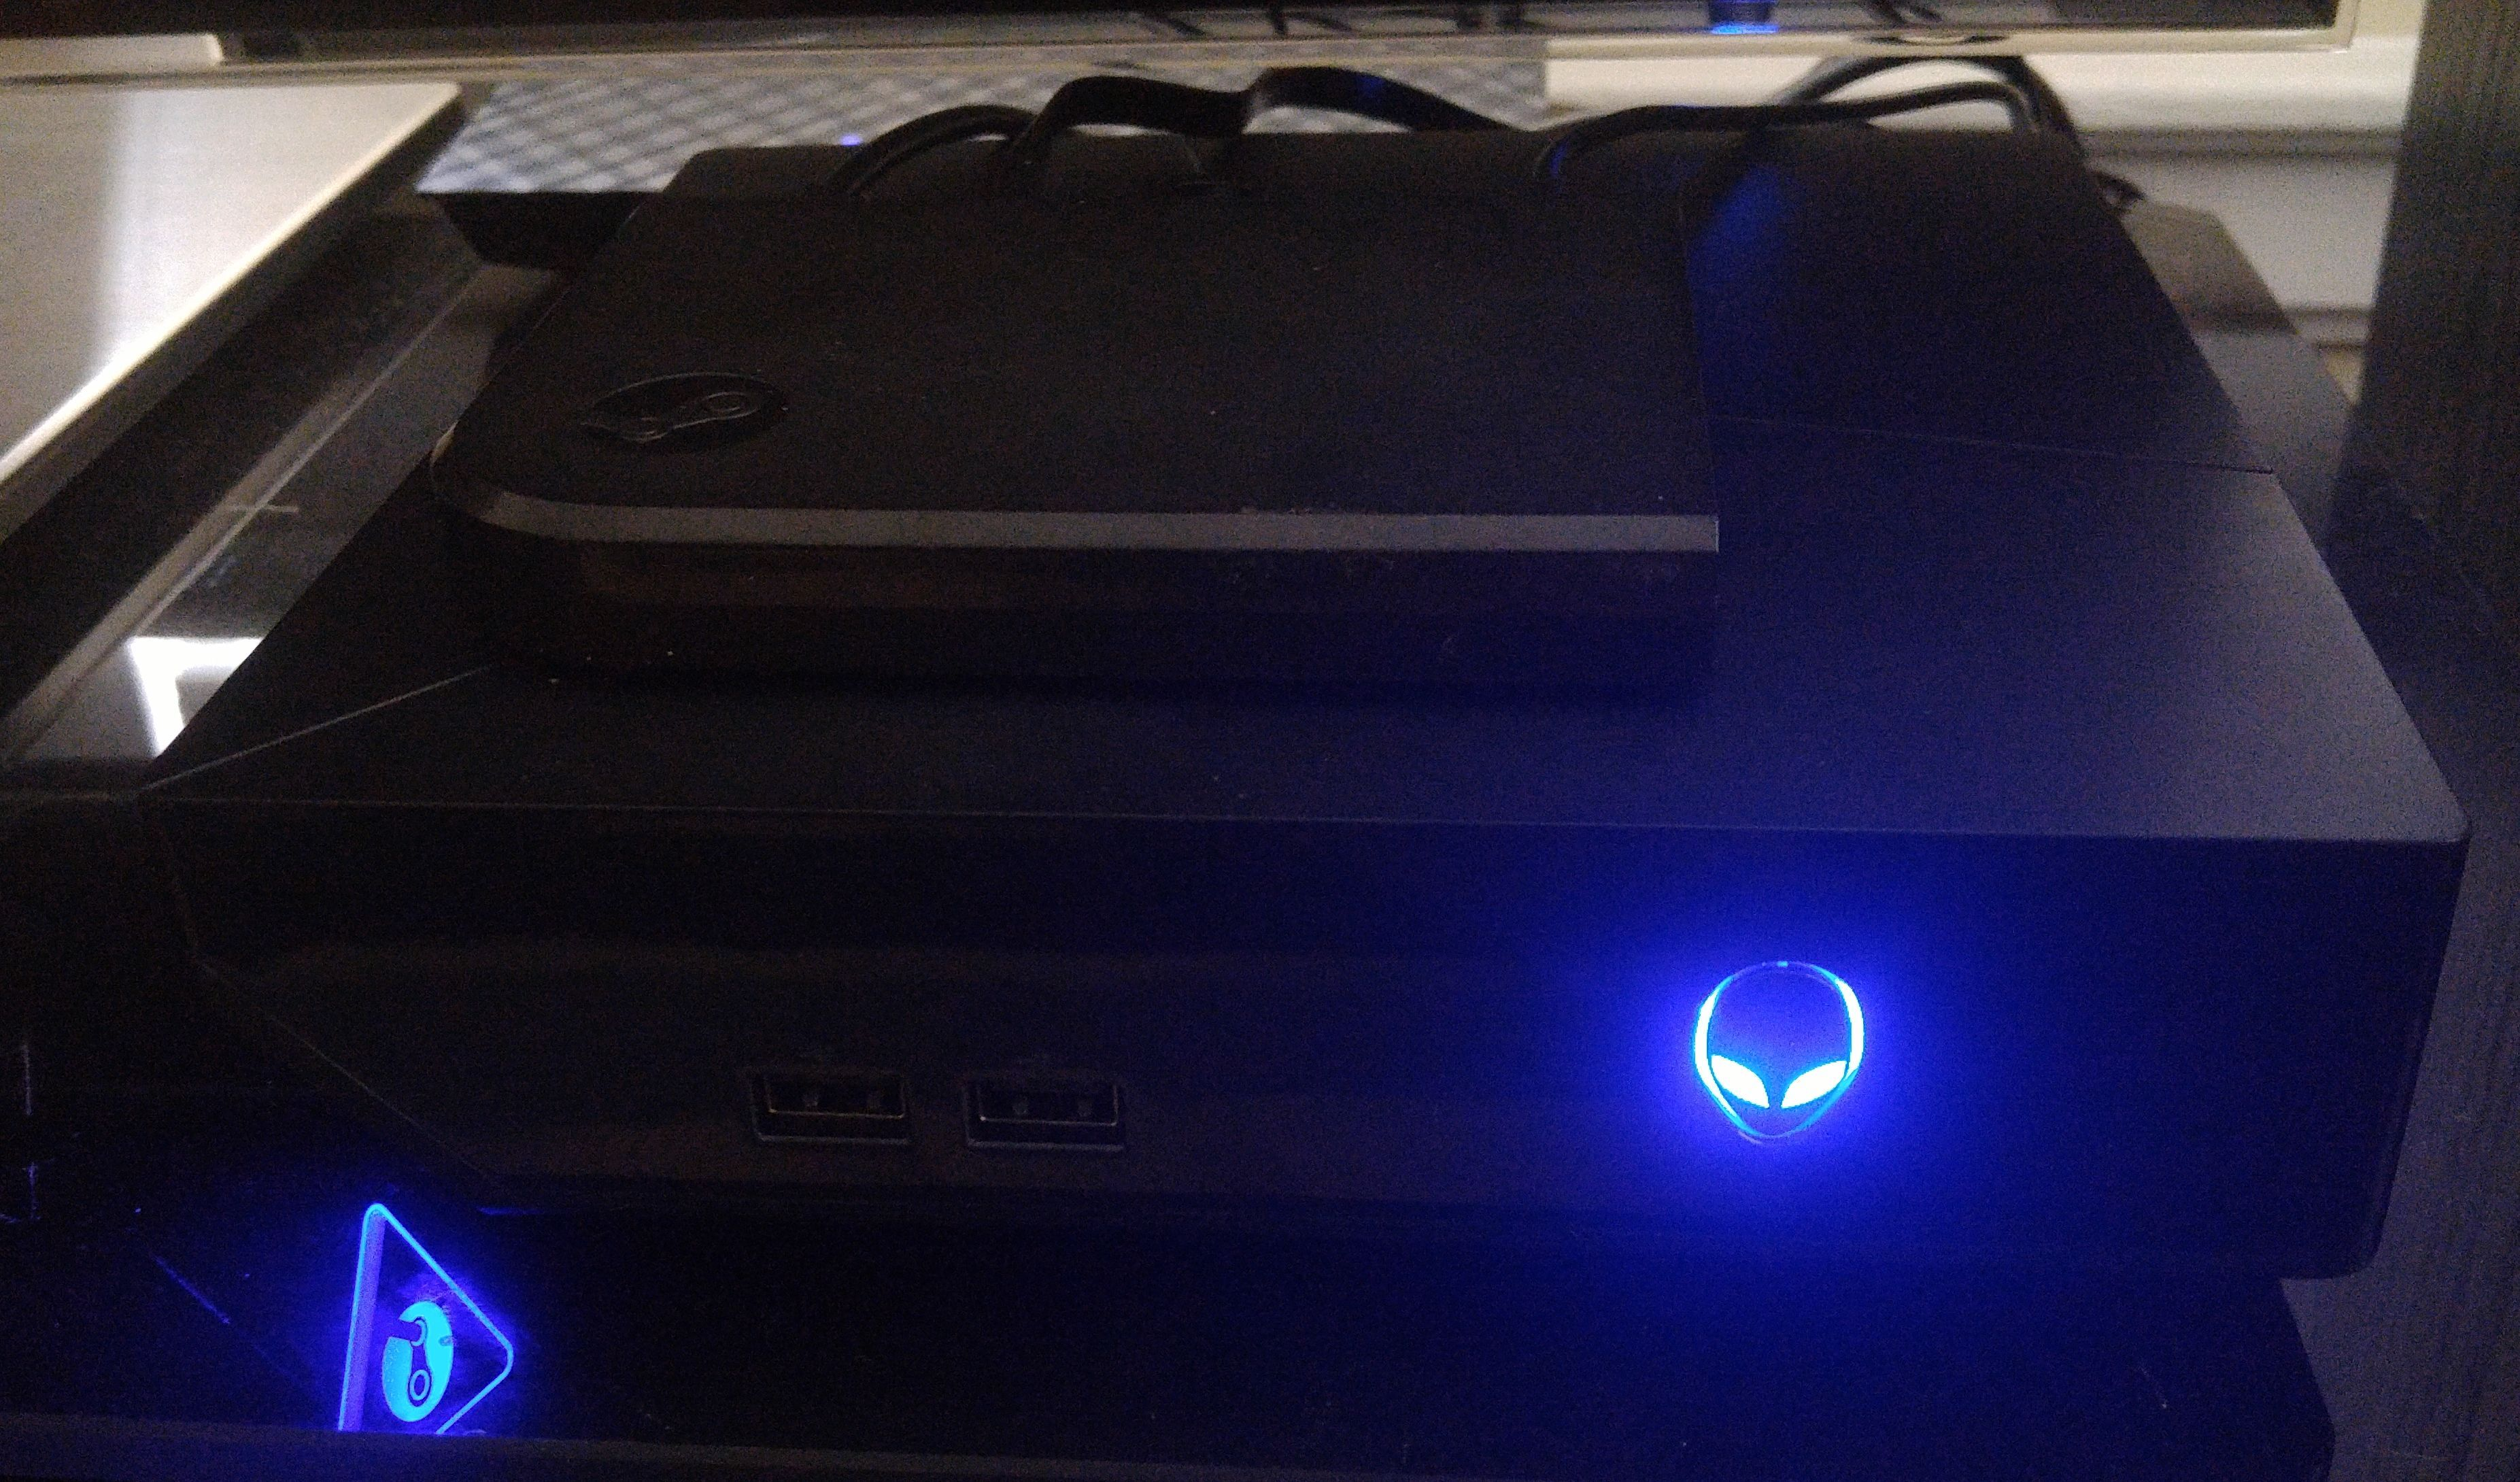 the alienware steam machine